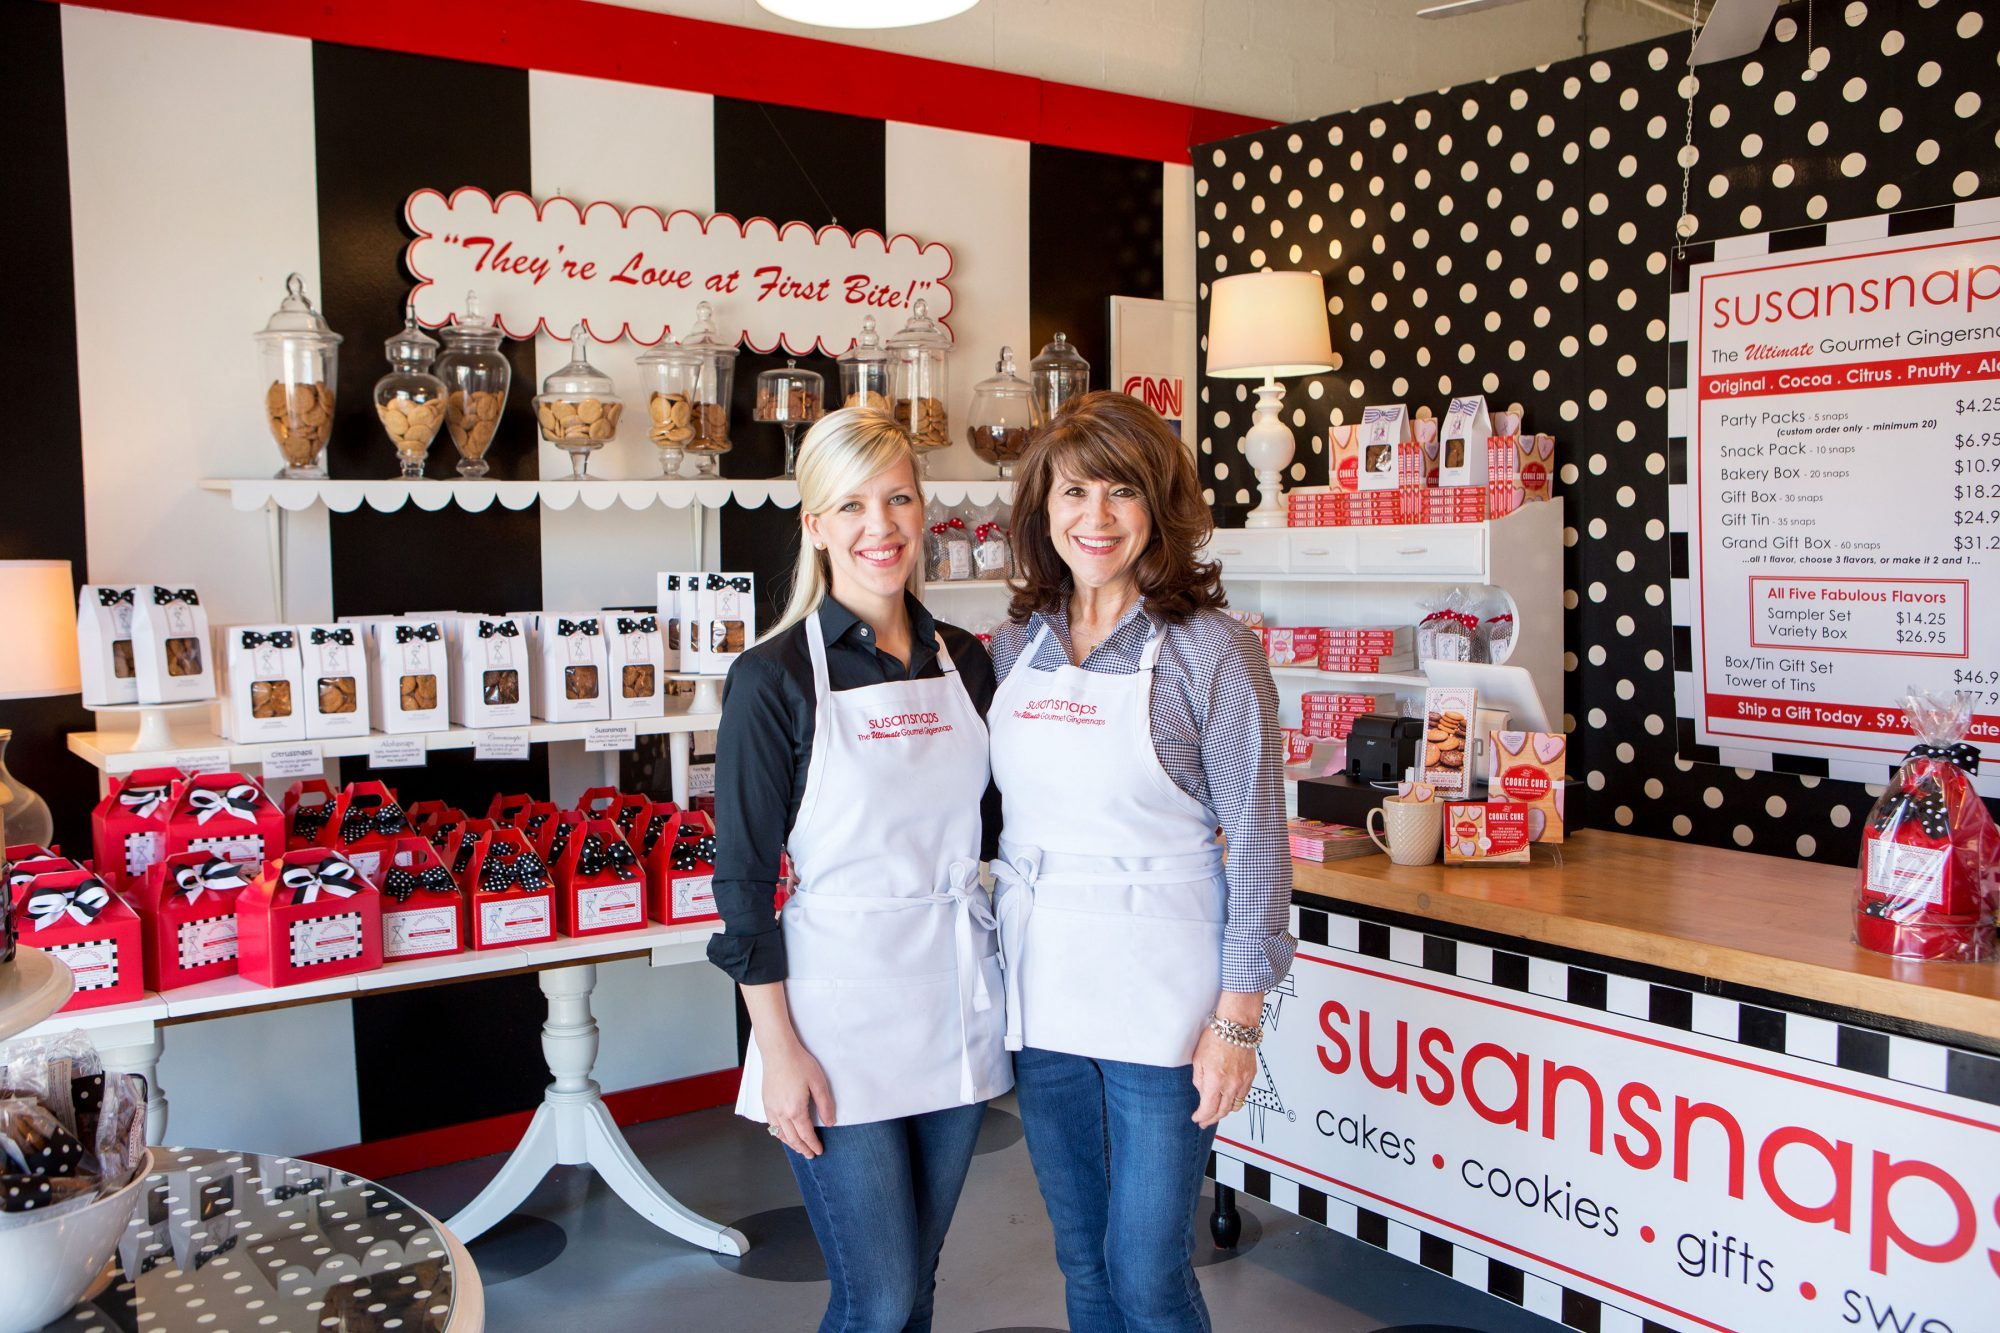 Susan and Laura Stachler of Susansnaps